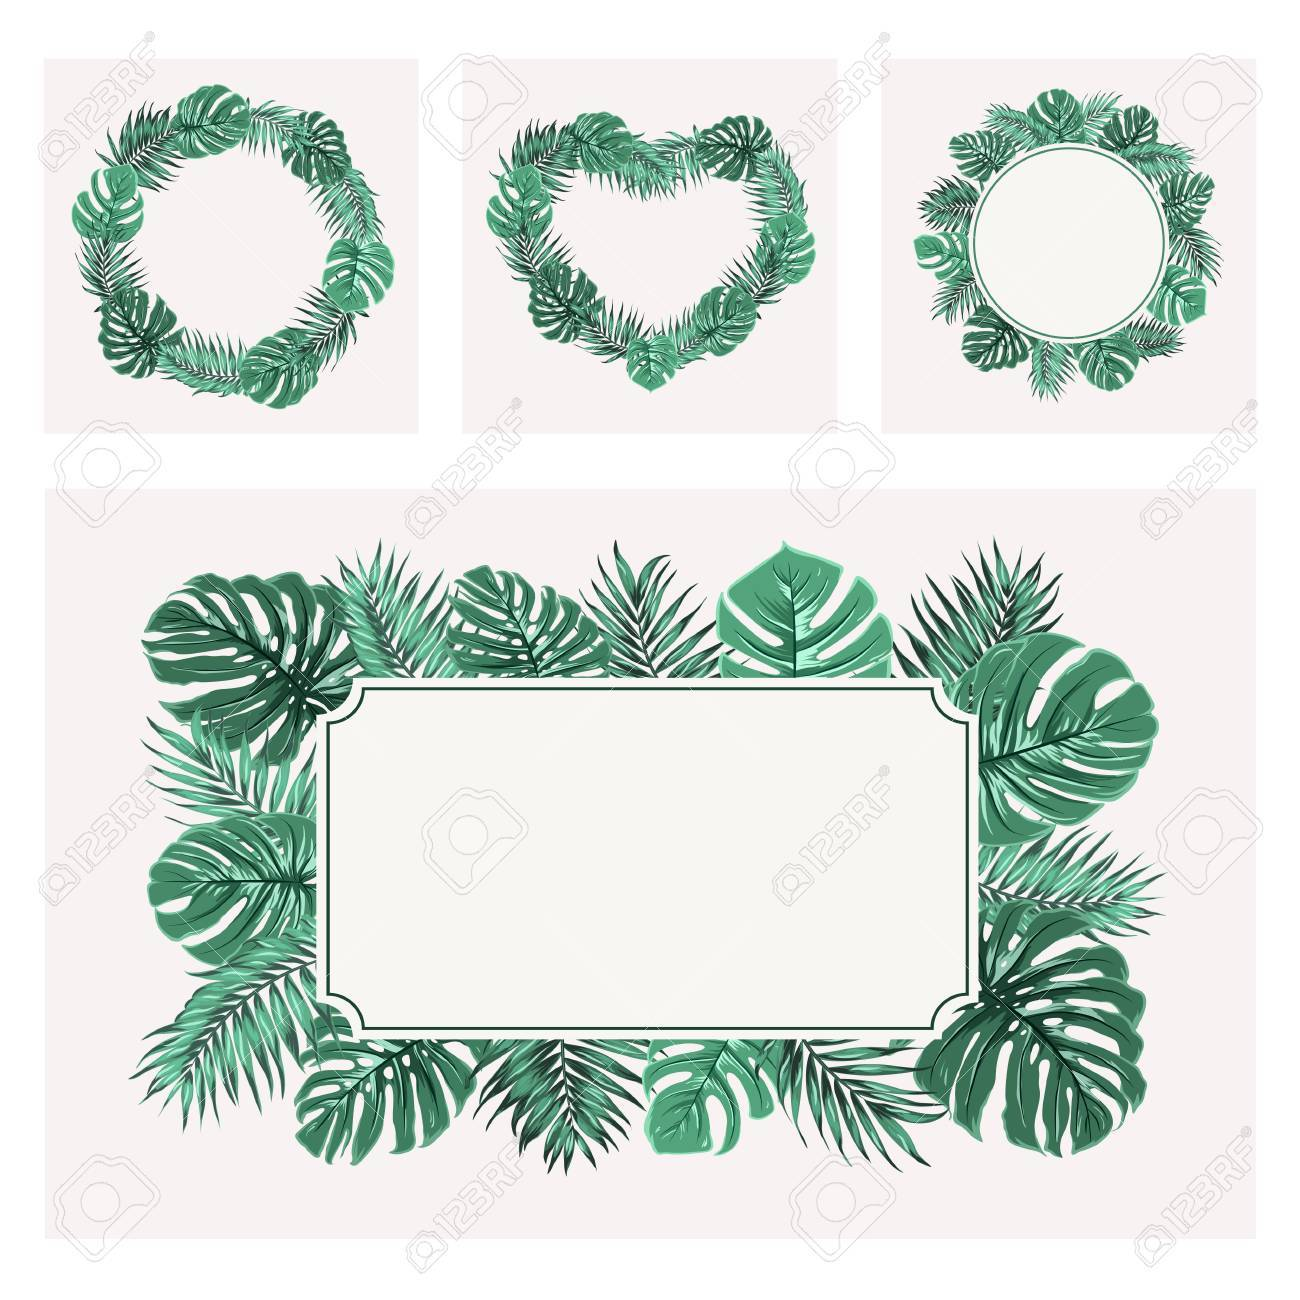 Exotic Tropical Greenery Border Frame Templates Set Rectangular